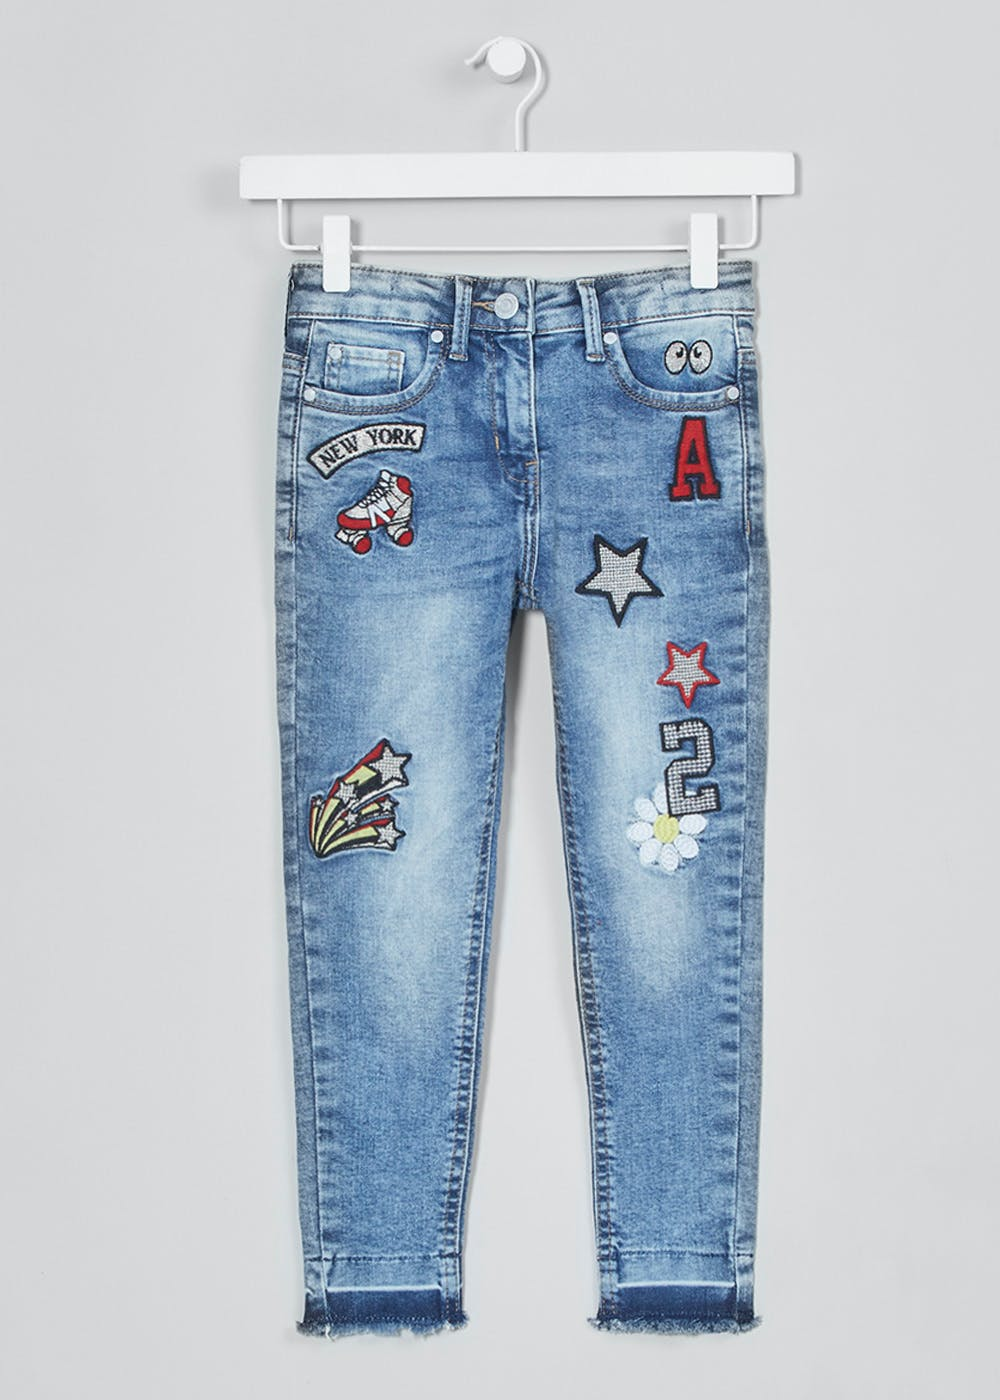 Jeggings age 3 4